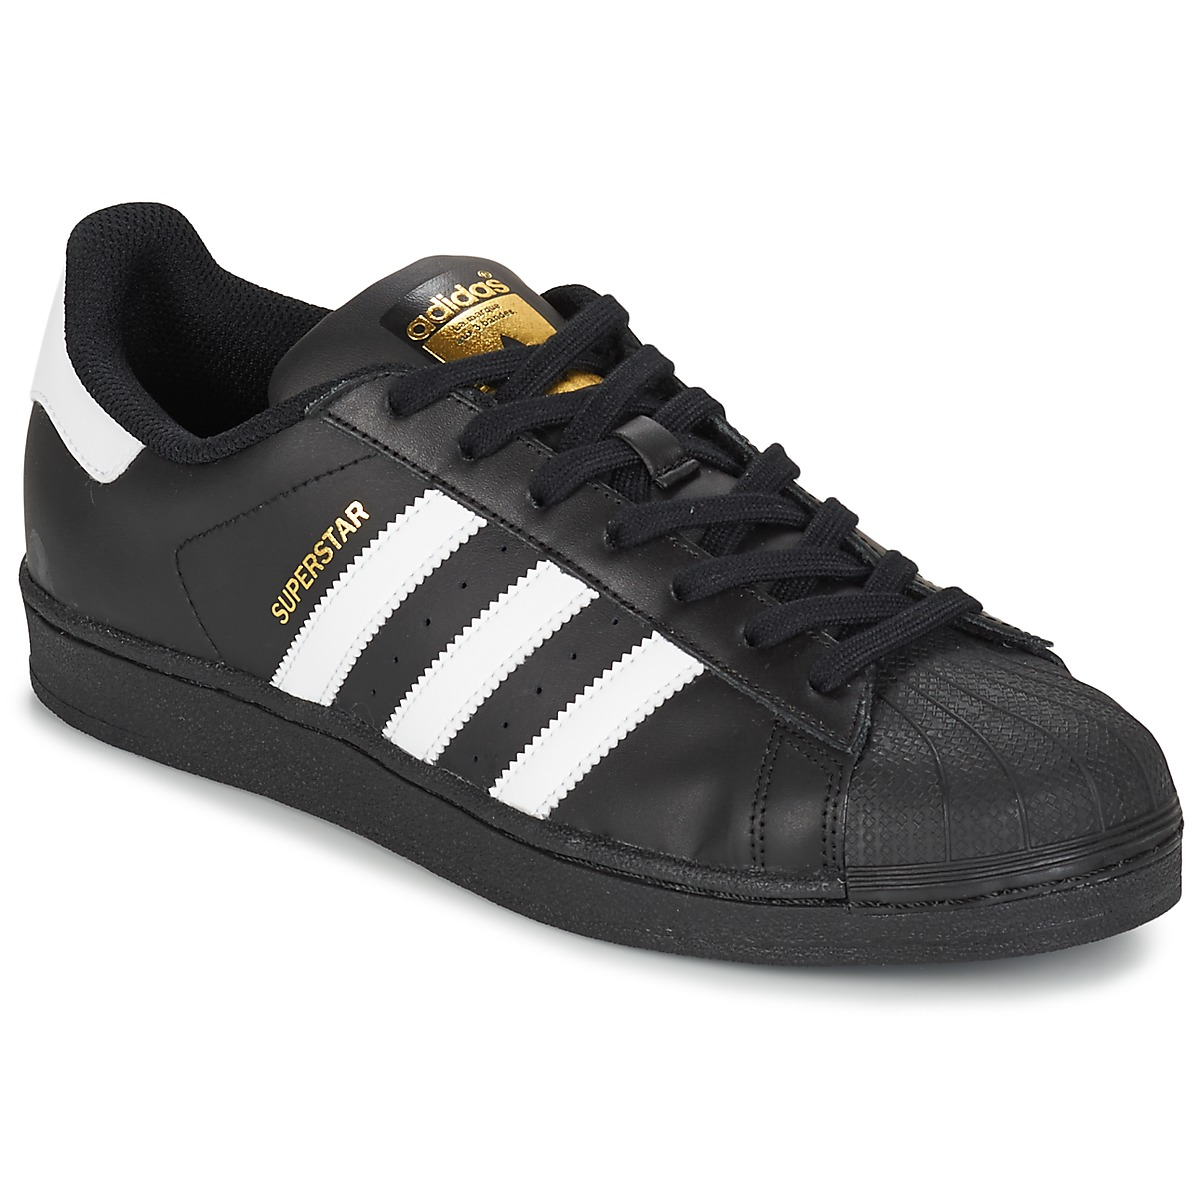 Adidas Superstar Kindermaat 34